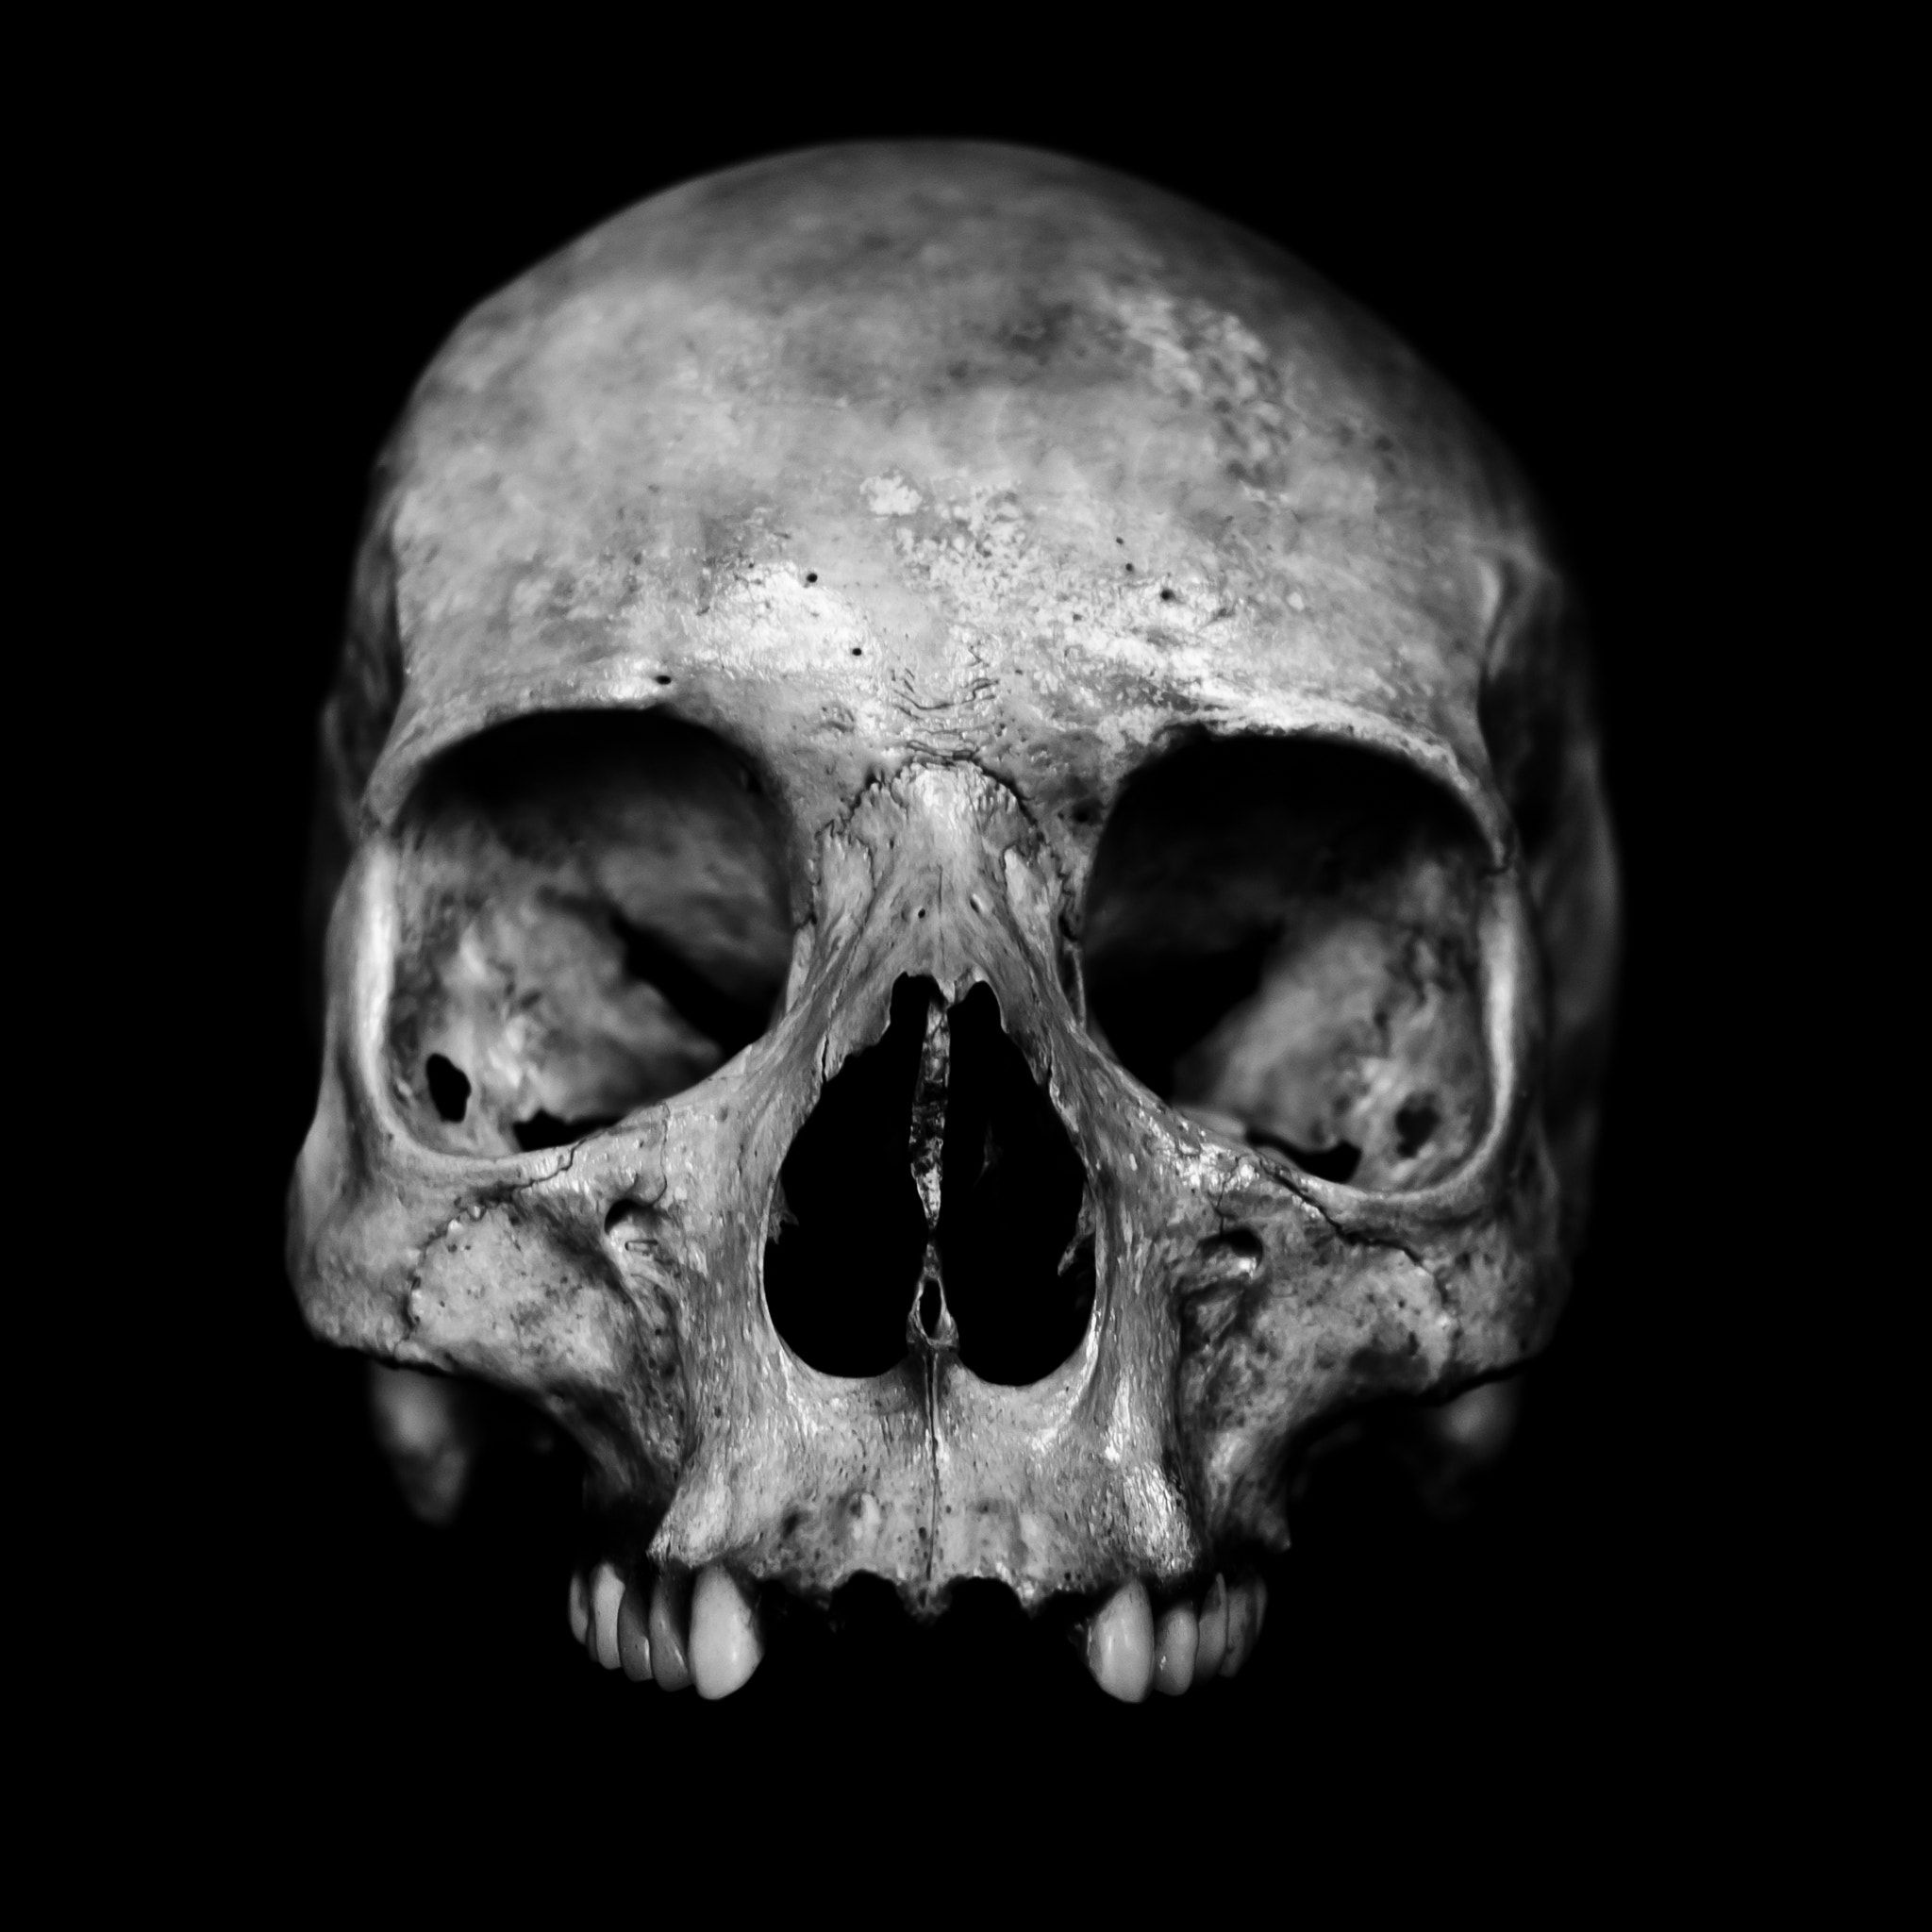 Smile! - Human skull on black background. | skulls in 2019 ...